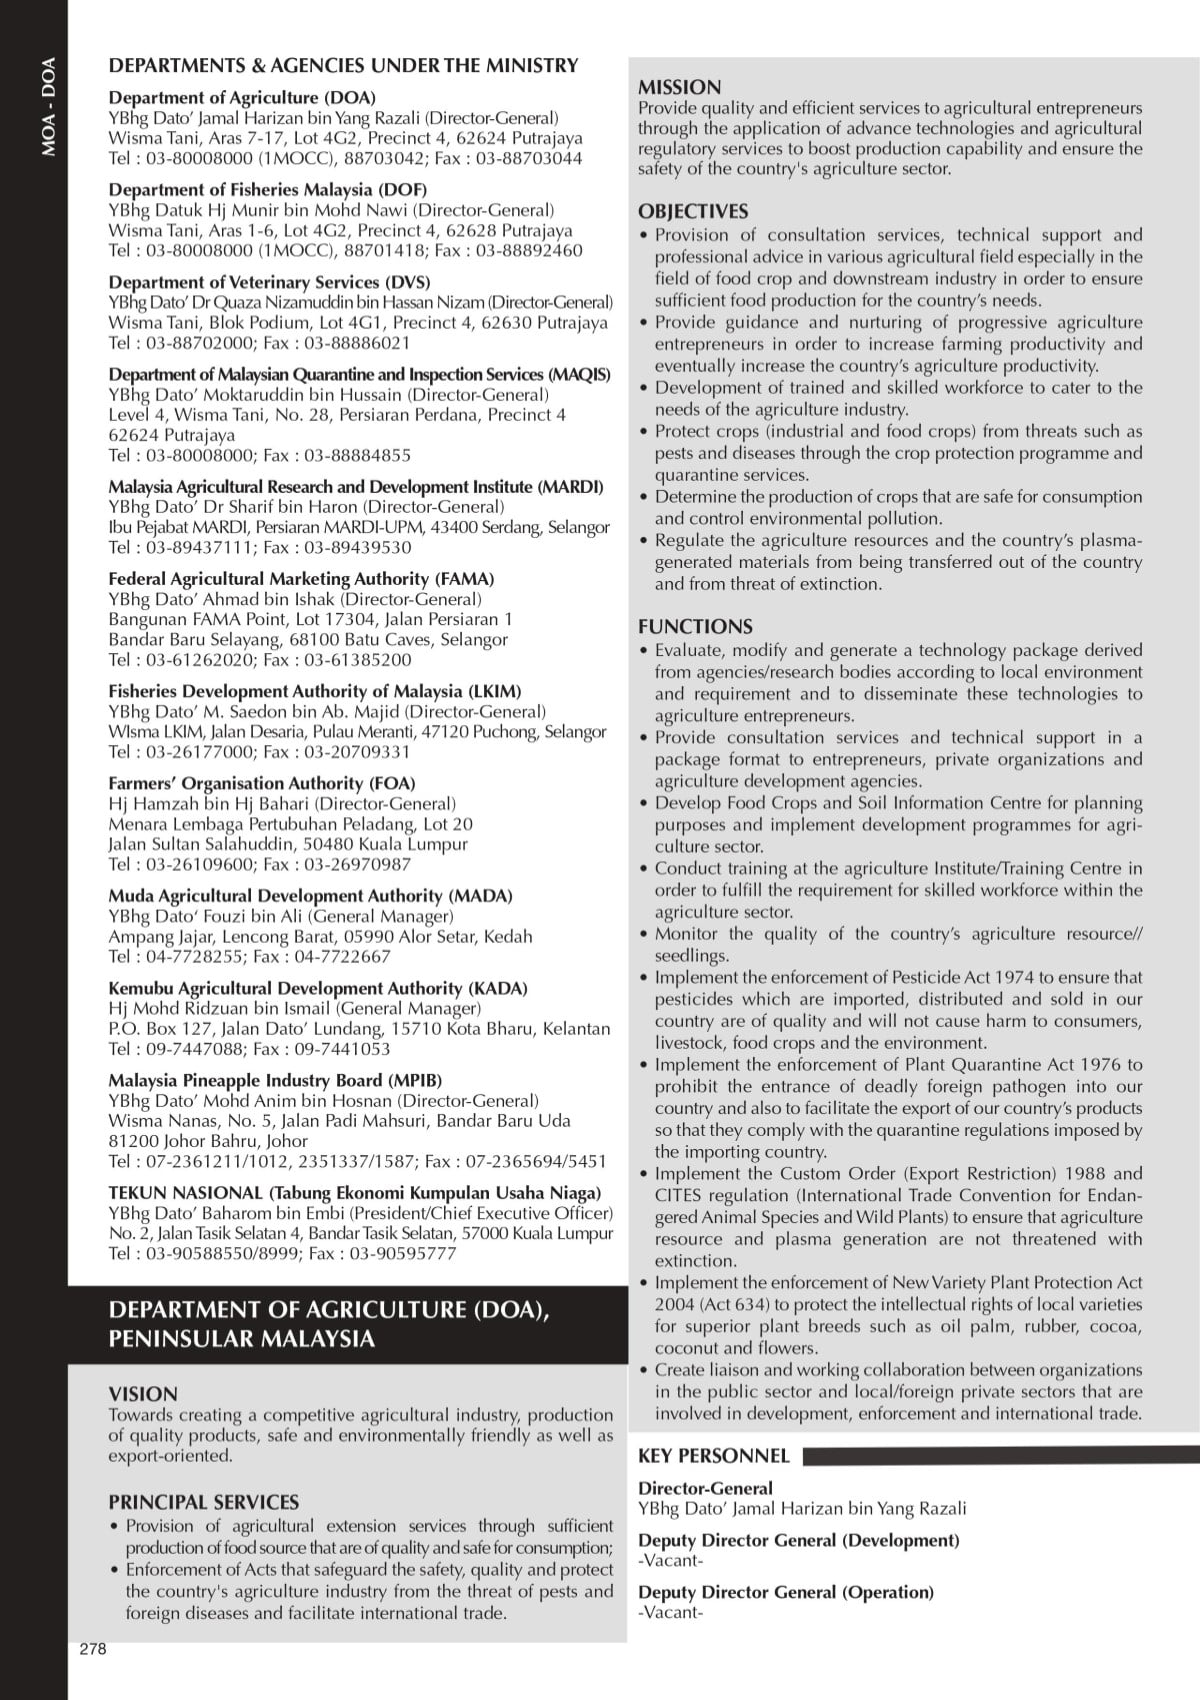 Ministry of Agriculture and Agro-based Industry (MOA) Contact List in full